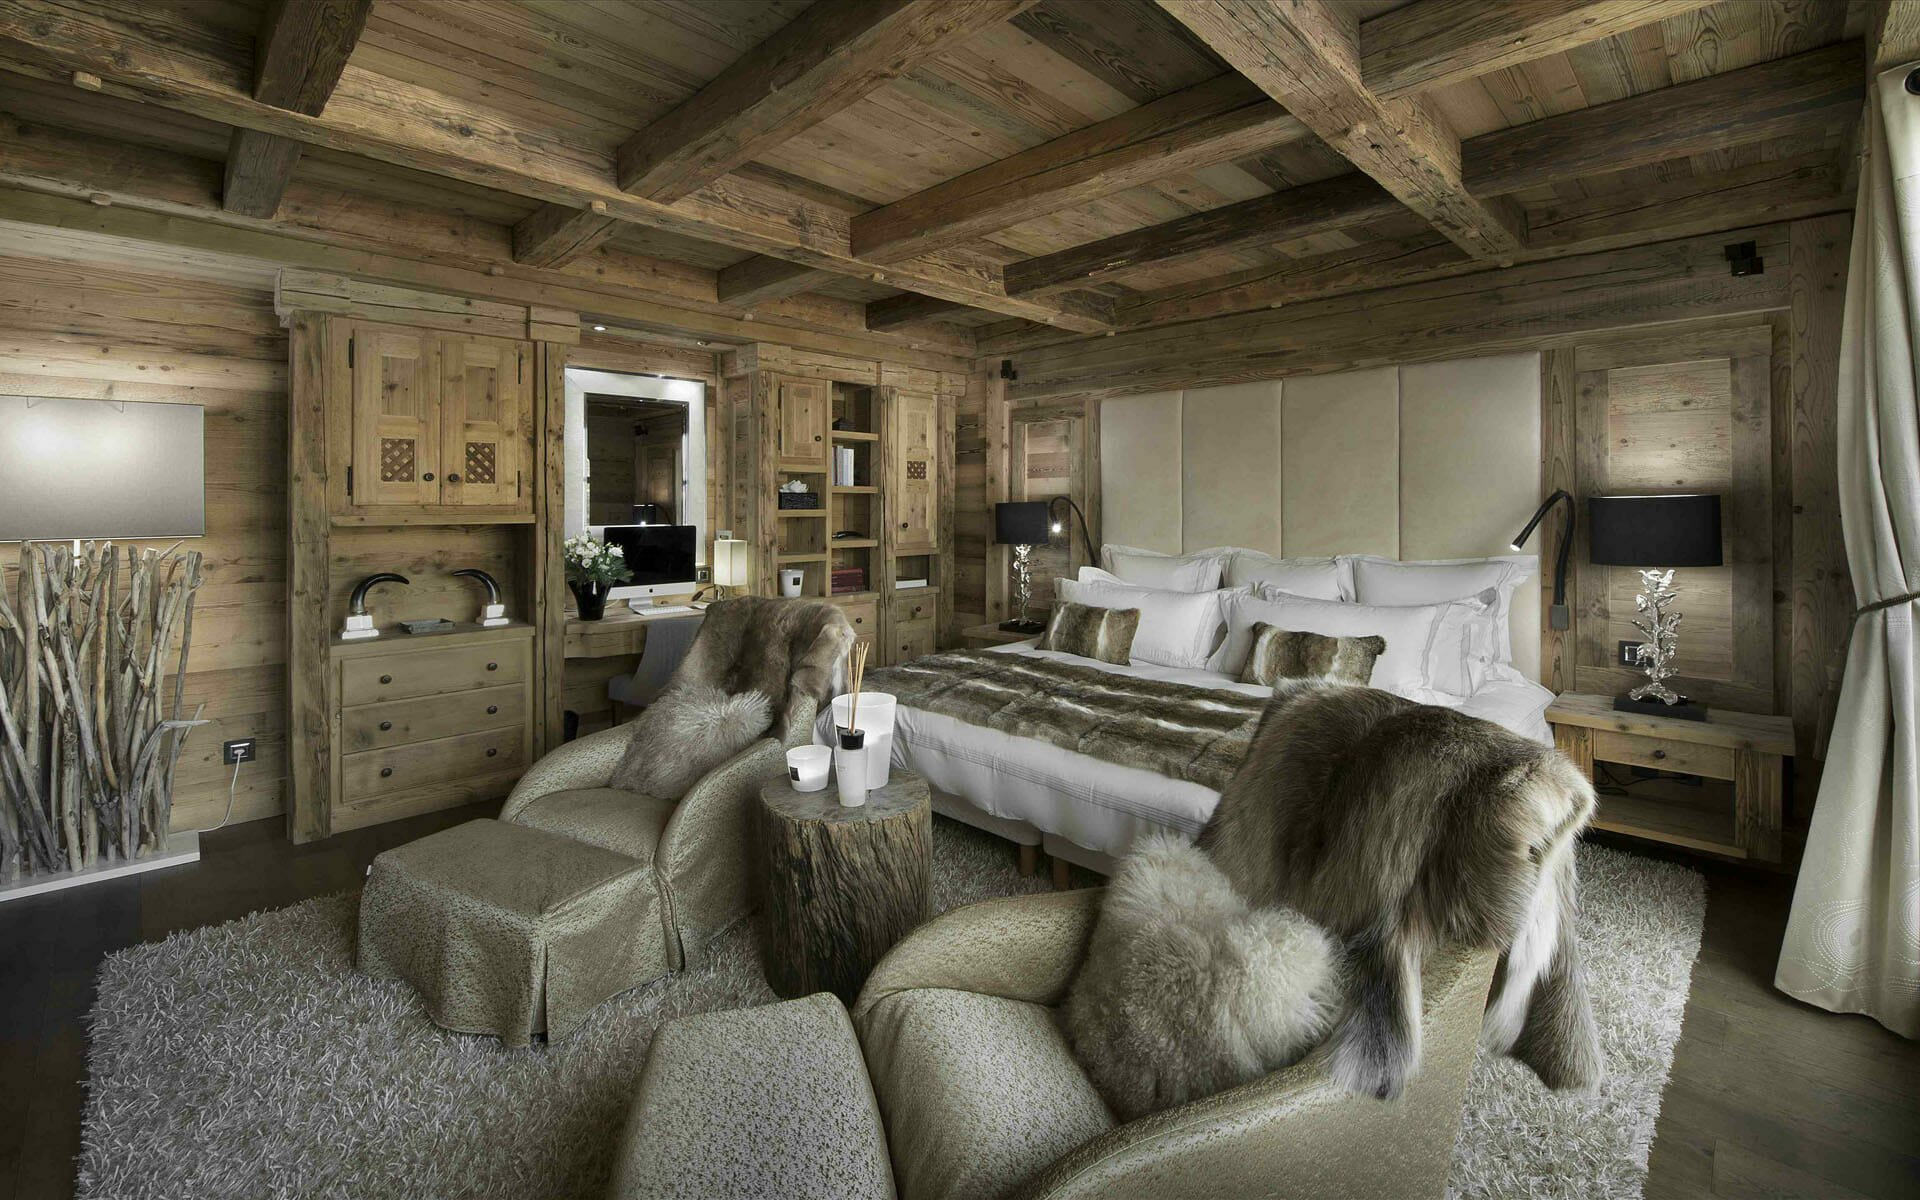 Cozy bedroom cabin interior design